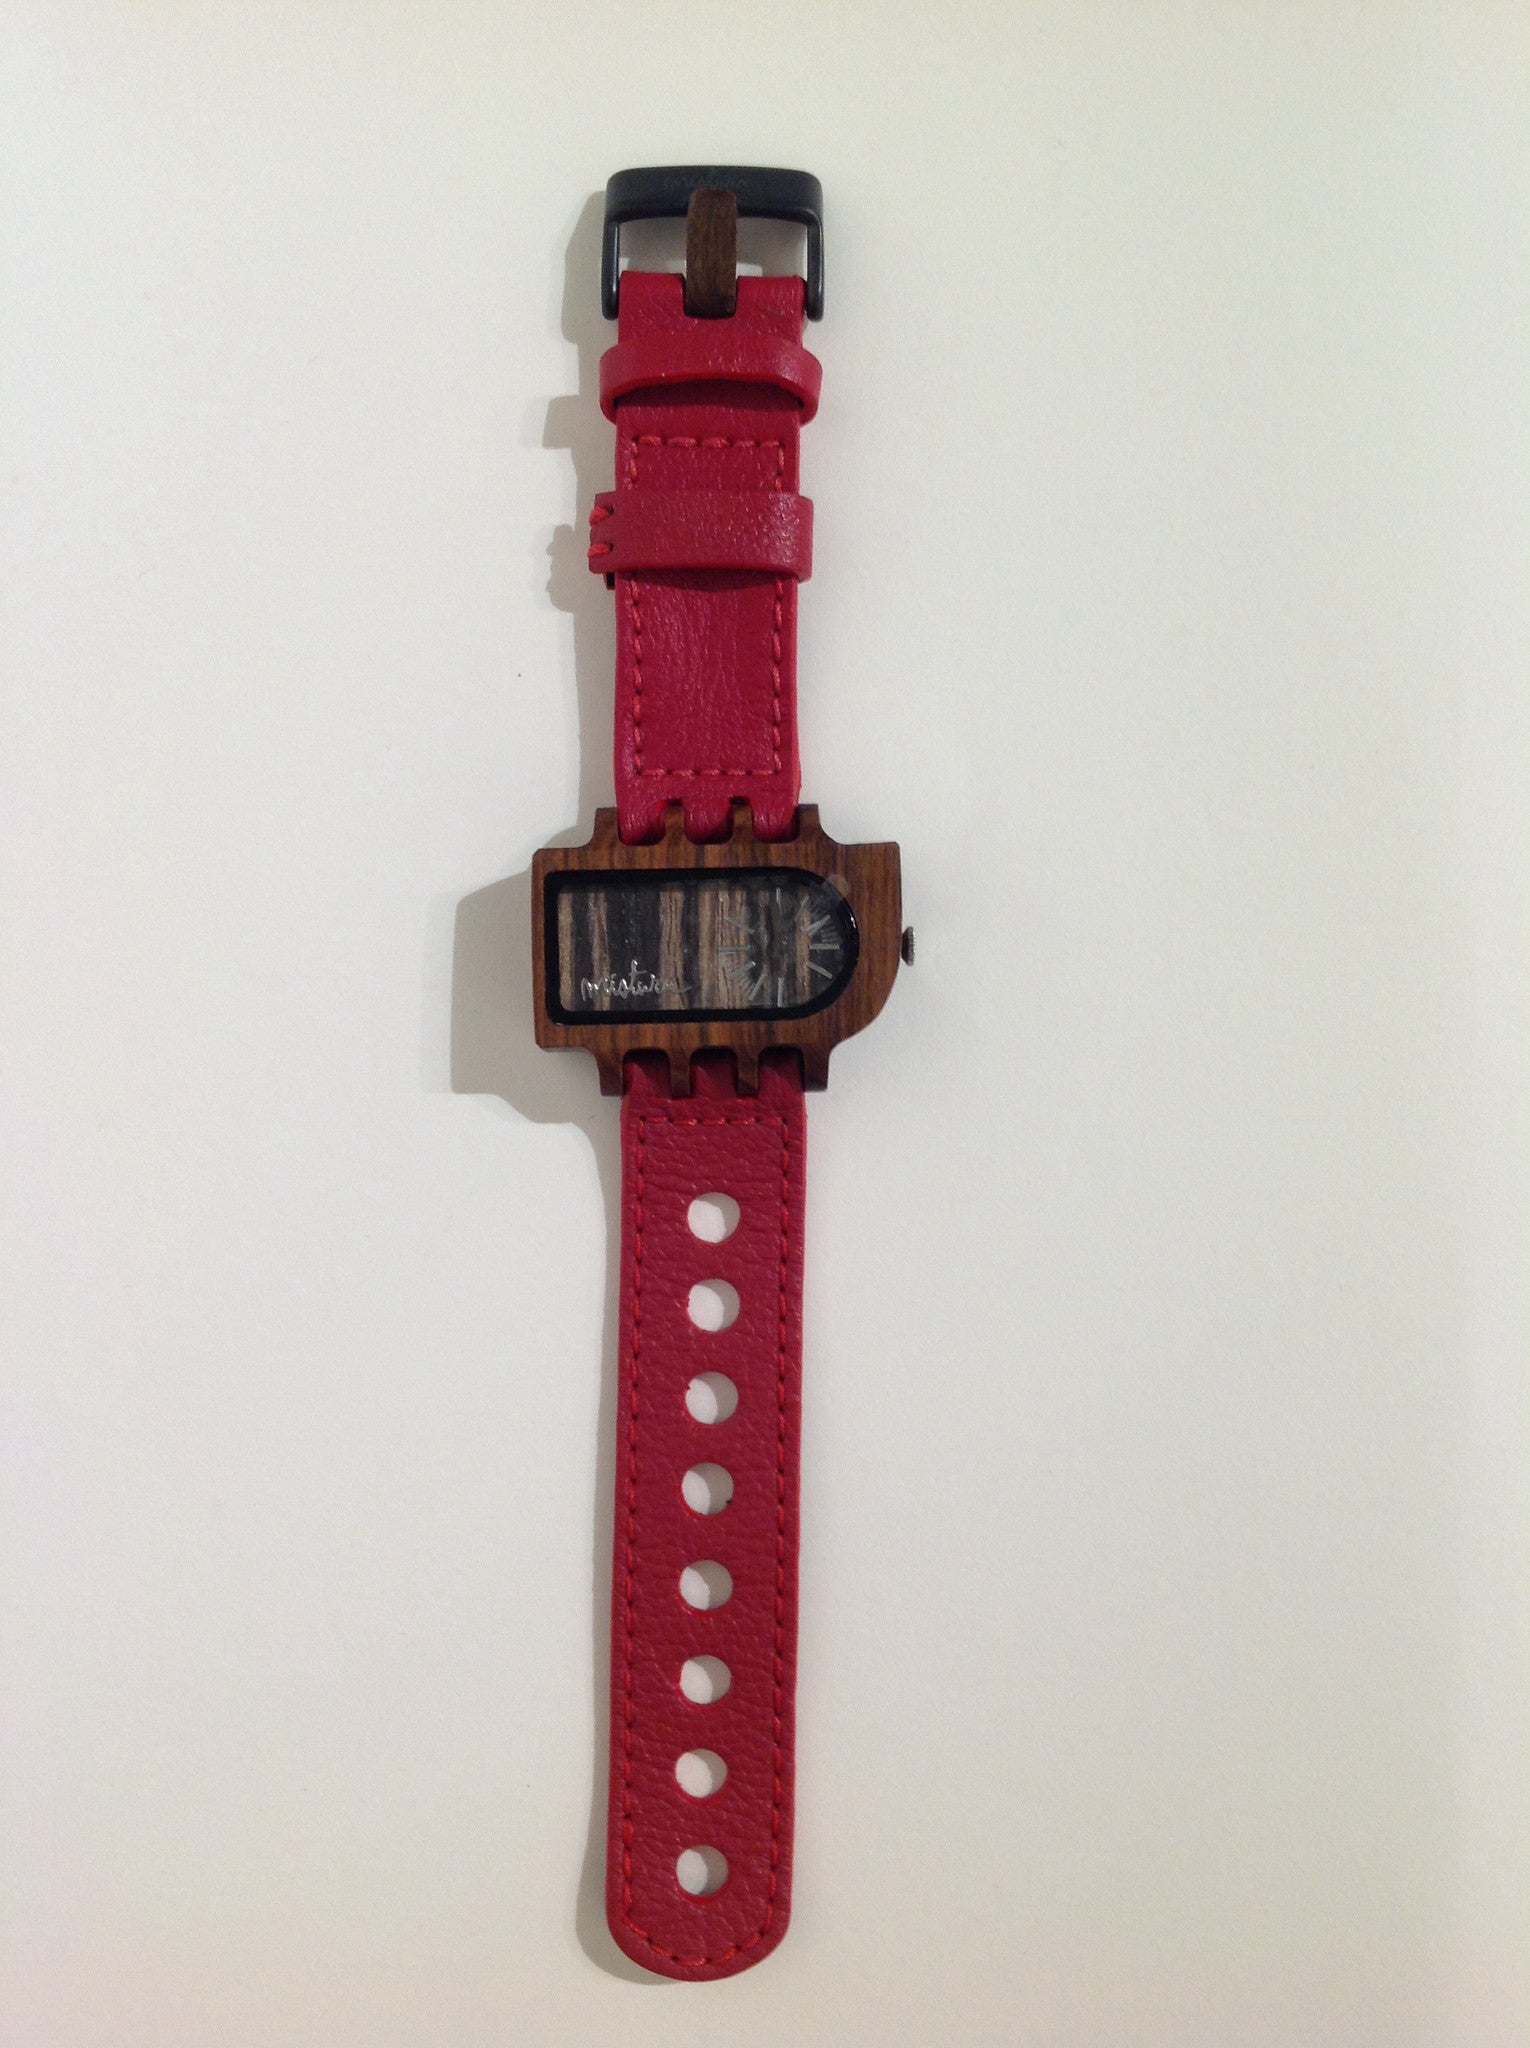 Umbra watch by Mistura